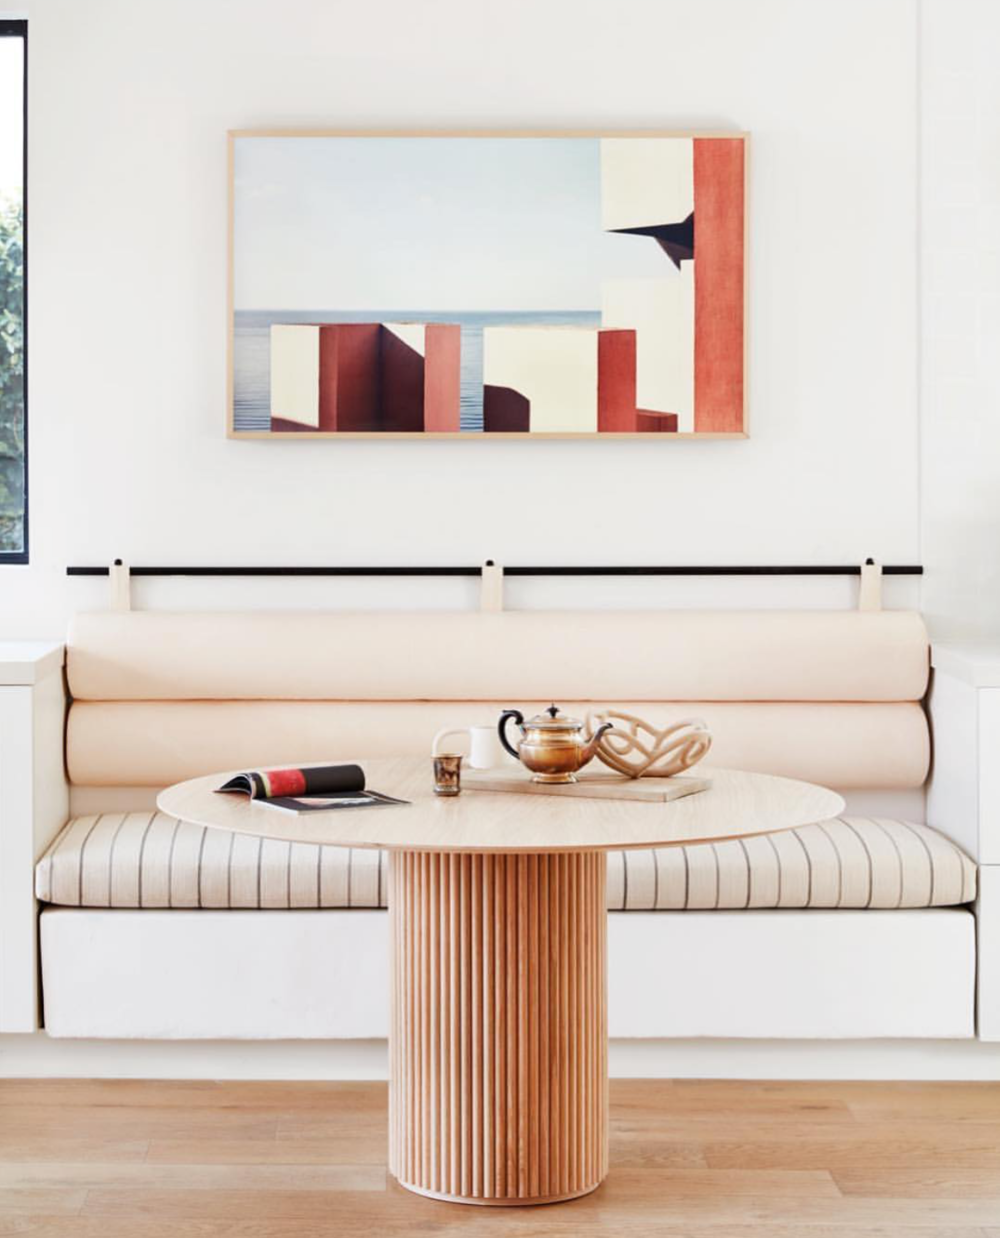 (interiors by Sarah Sherman Samuel, in the home of Garance Dore')